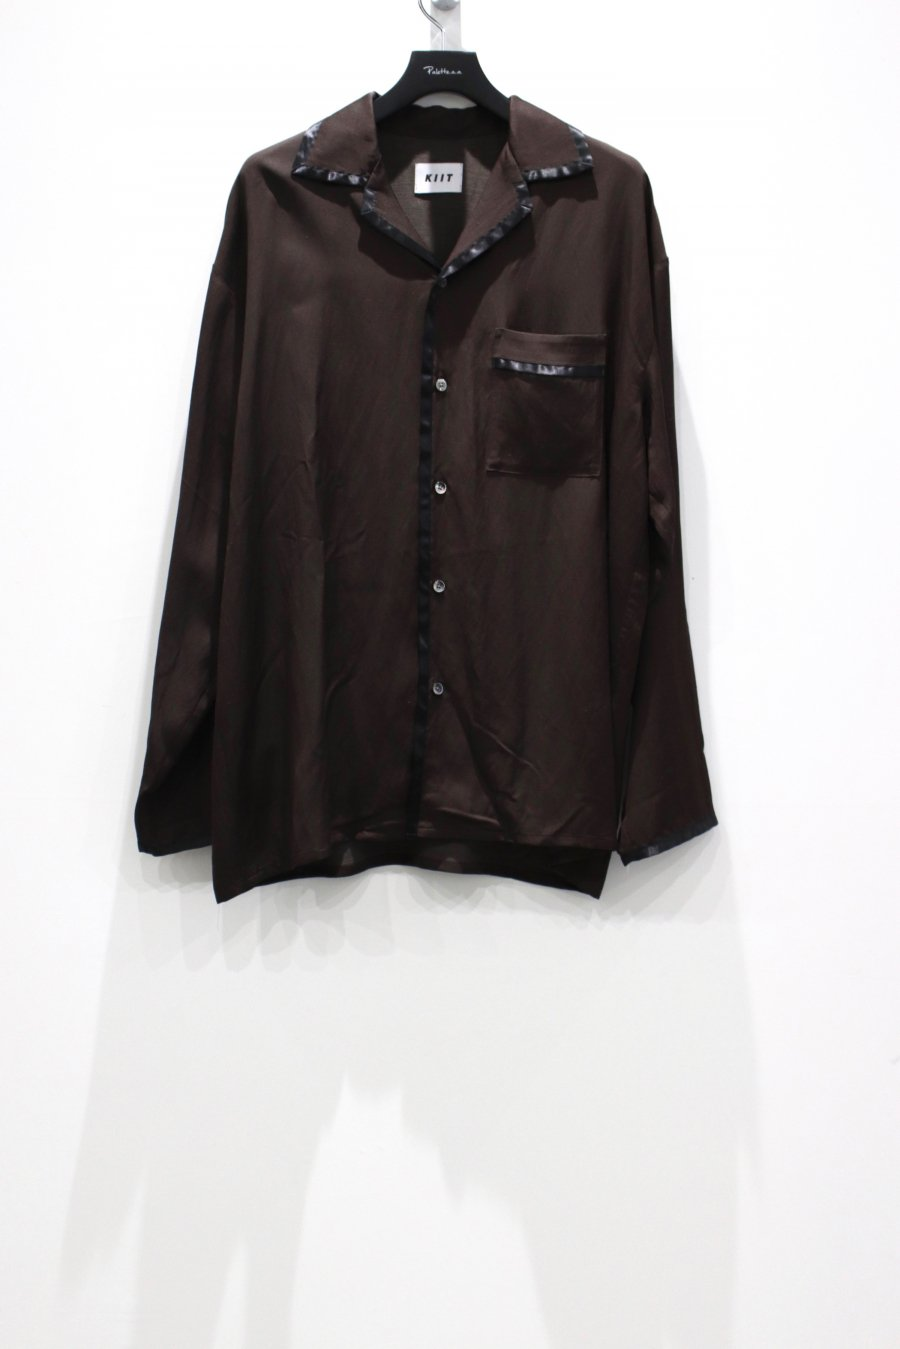 KIIT  TRICOTINE PAJAMA SHIRT(D.BROWN)<img class='new_mark_img2' src='https://img.shop-pro.jp/img/new/icons15.gif' style='border:none;display:inline;margin:0px;padding:0px;width:auto;' />